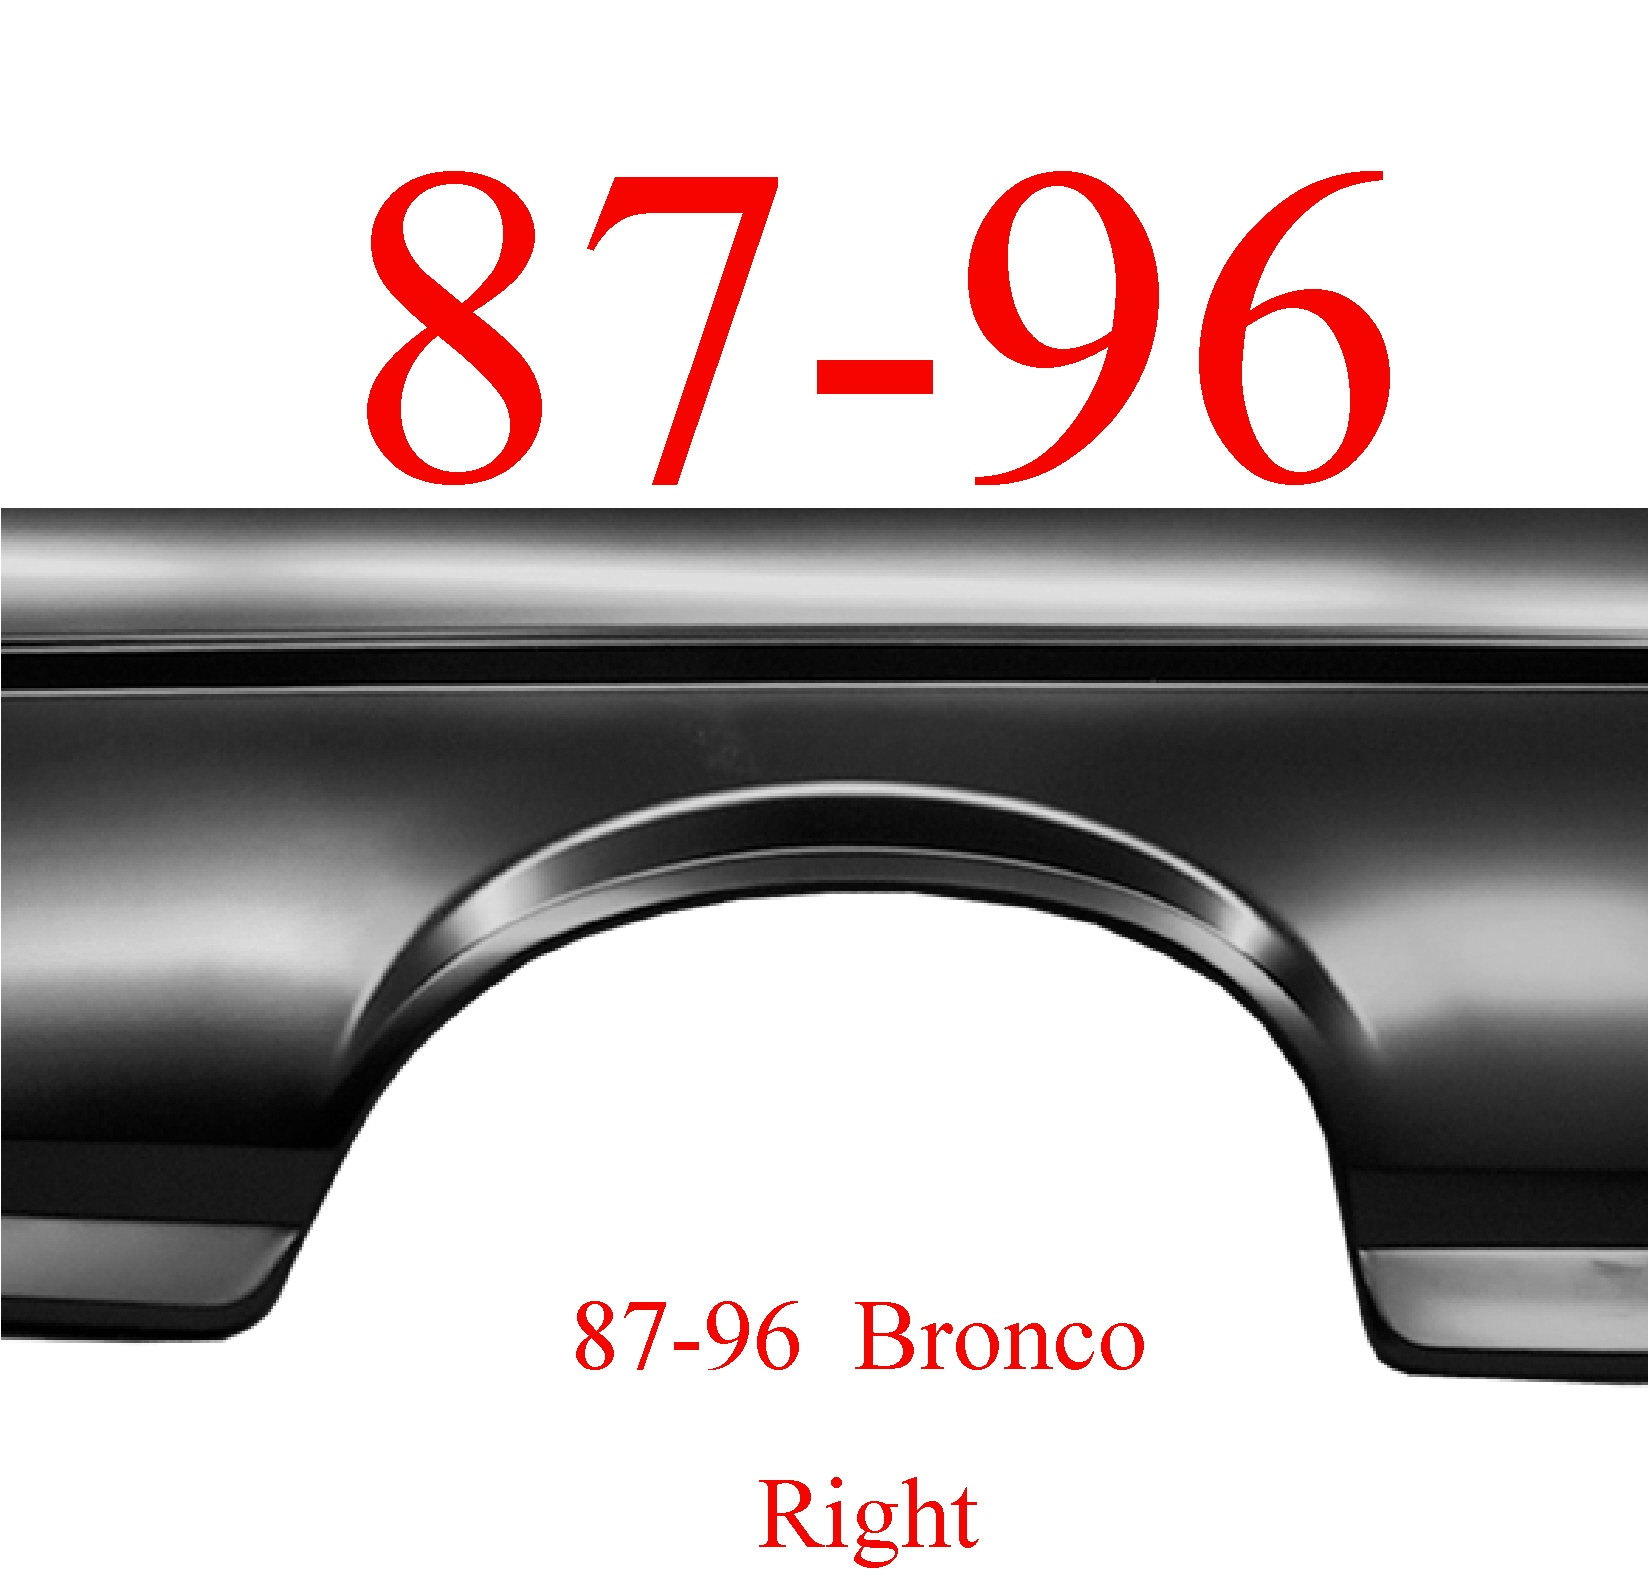 87-96 Bronco Right Full Rear Arch Panel